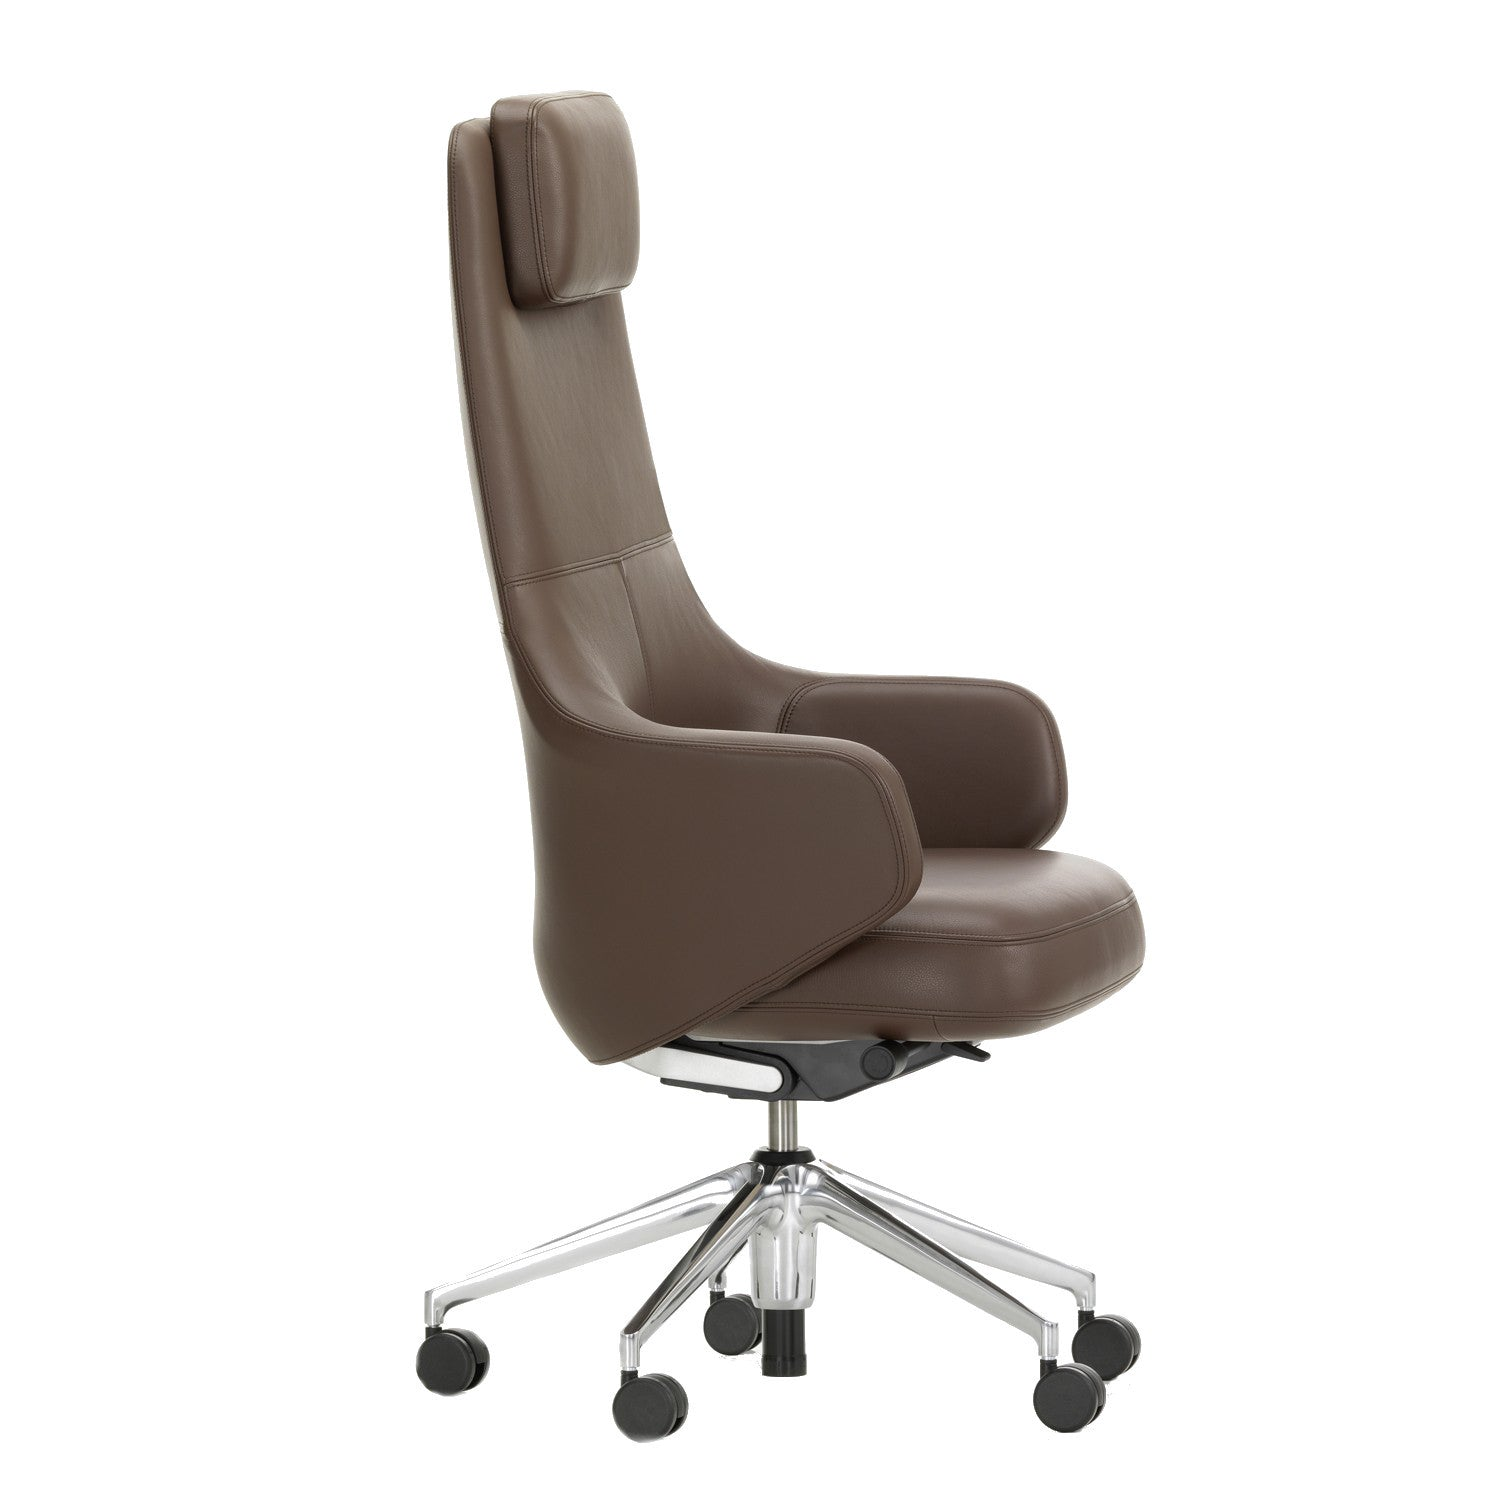 Vitra Grand Executive fice Chair